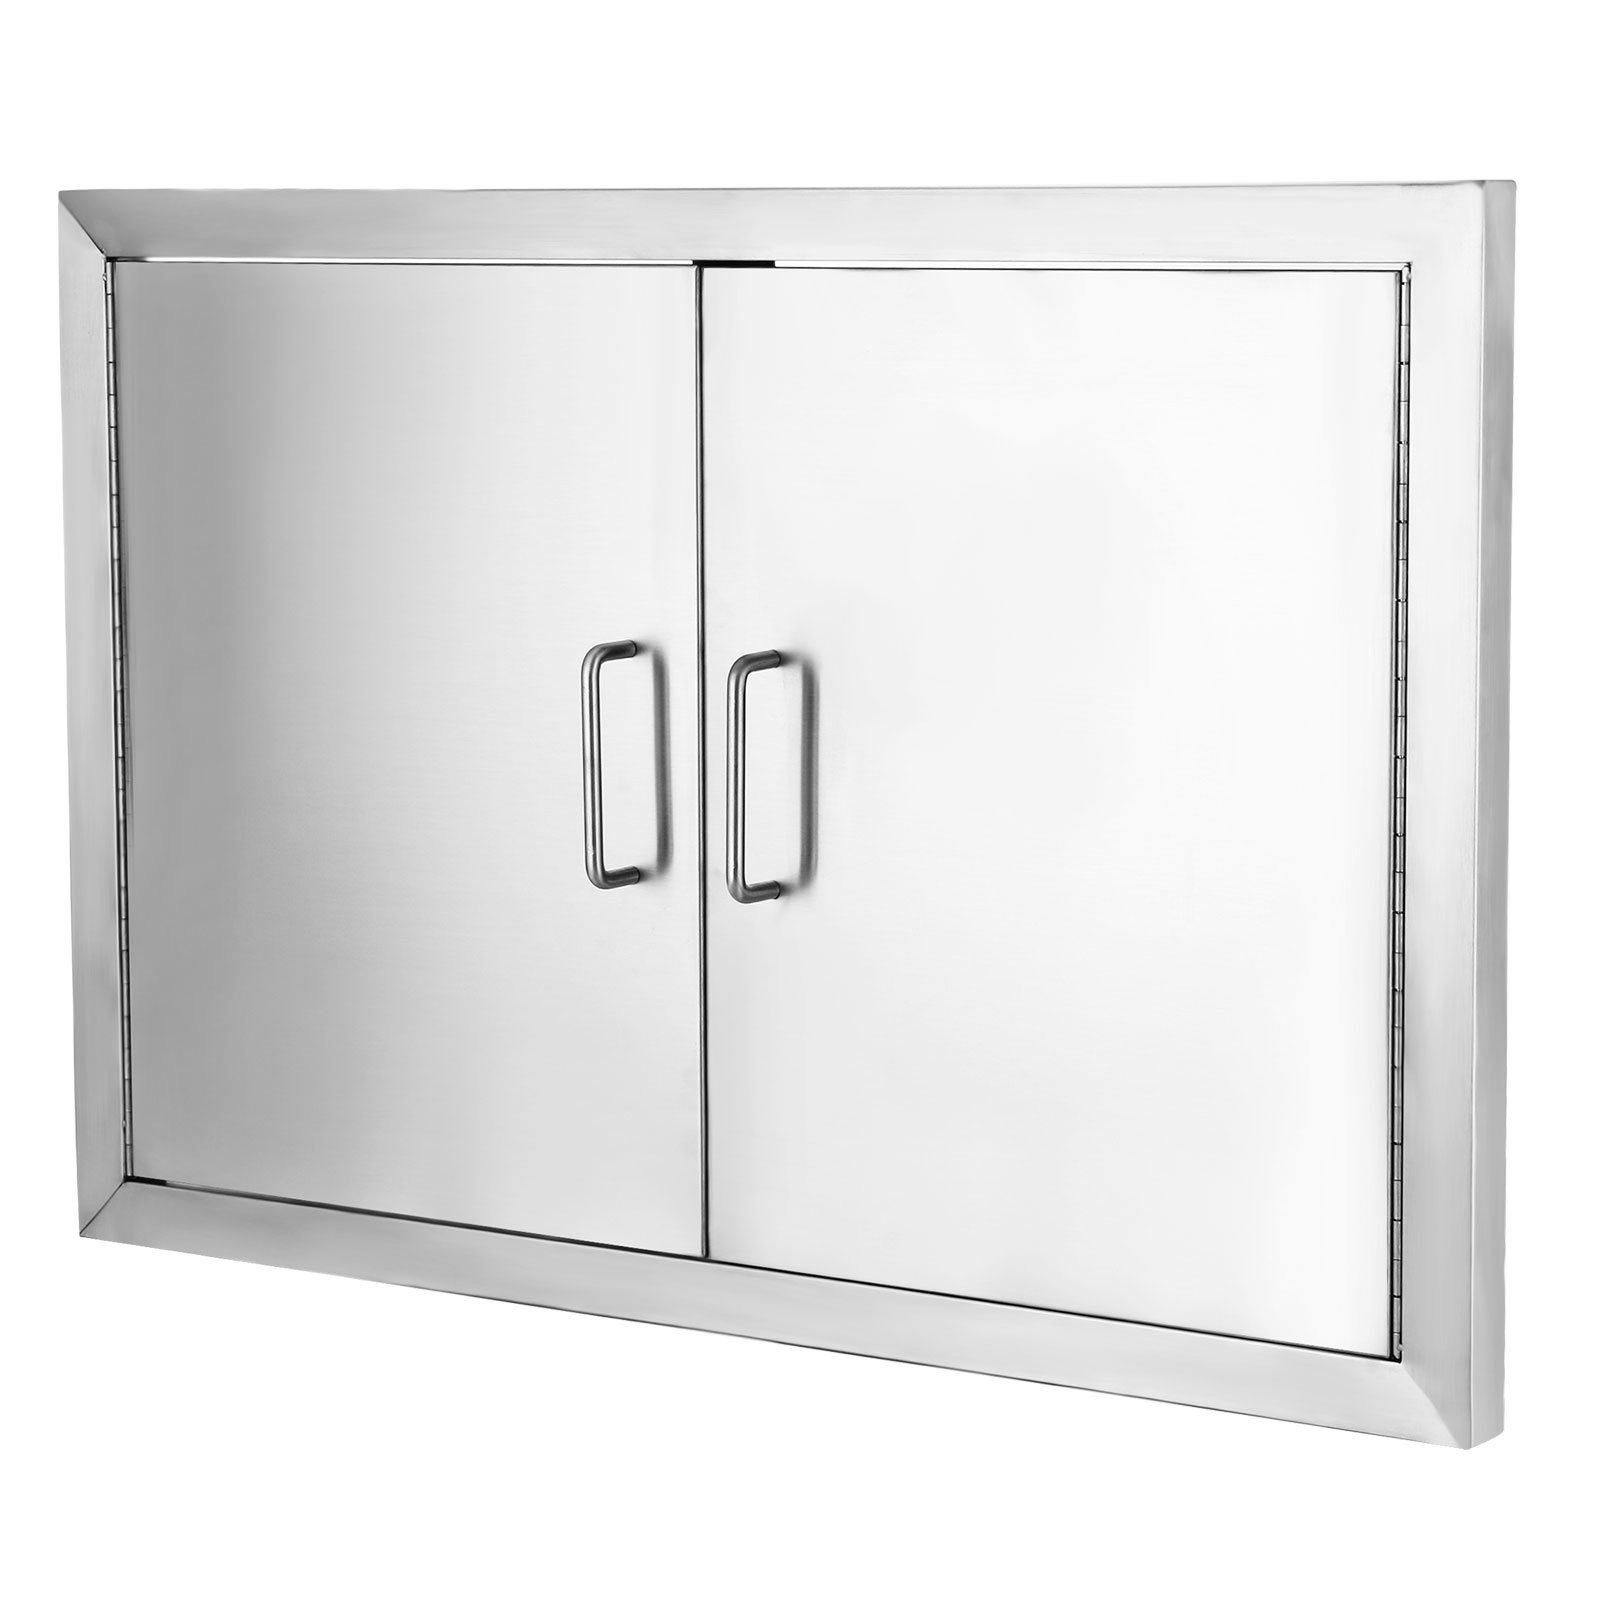 Happybuy BBQ Access Door Double Wall Construction Cutout 28W x 19H in. BBQ Island/Outdoor Kitchen Access Doors 304 Grade Brushed Stainless Steel Heavy Duty